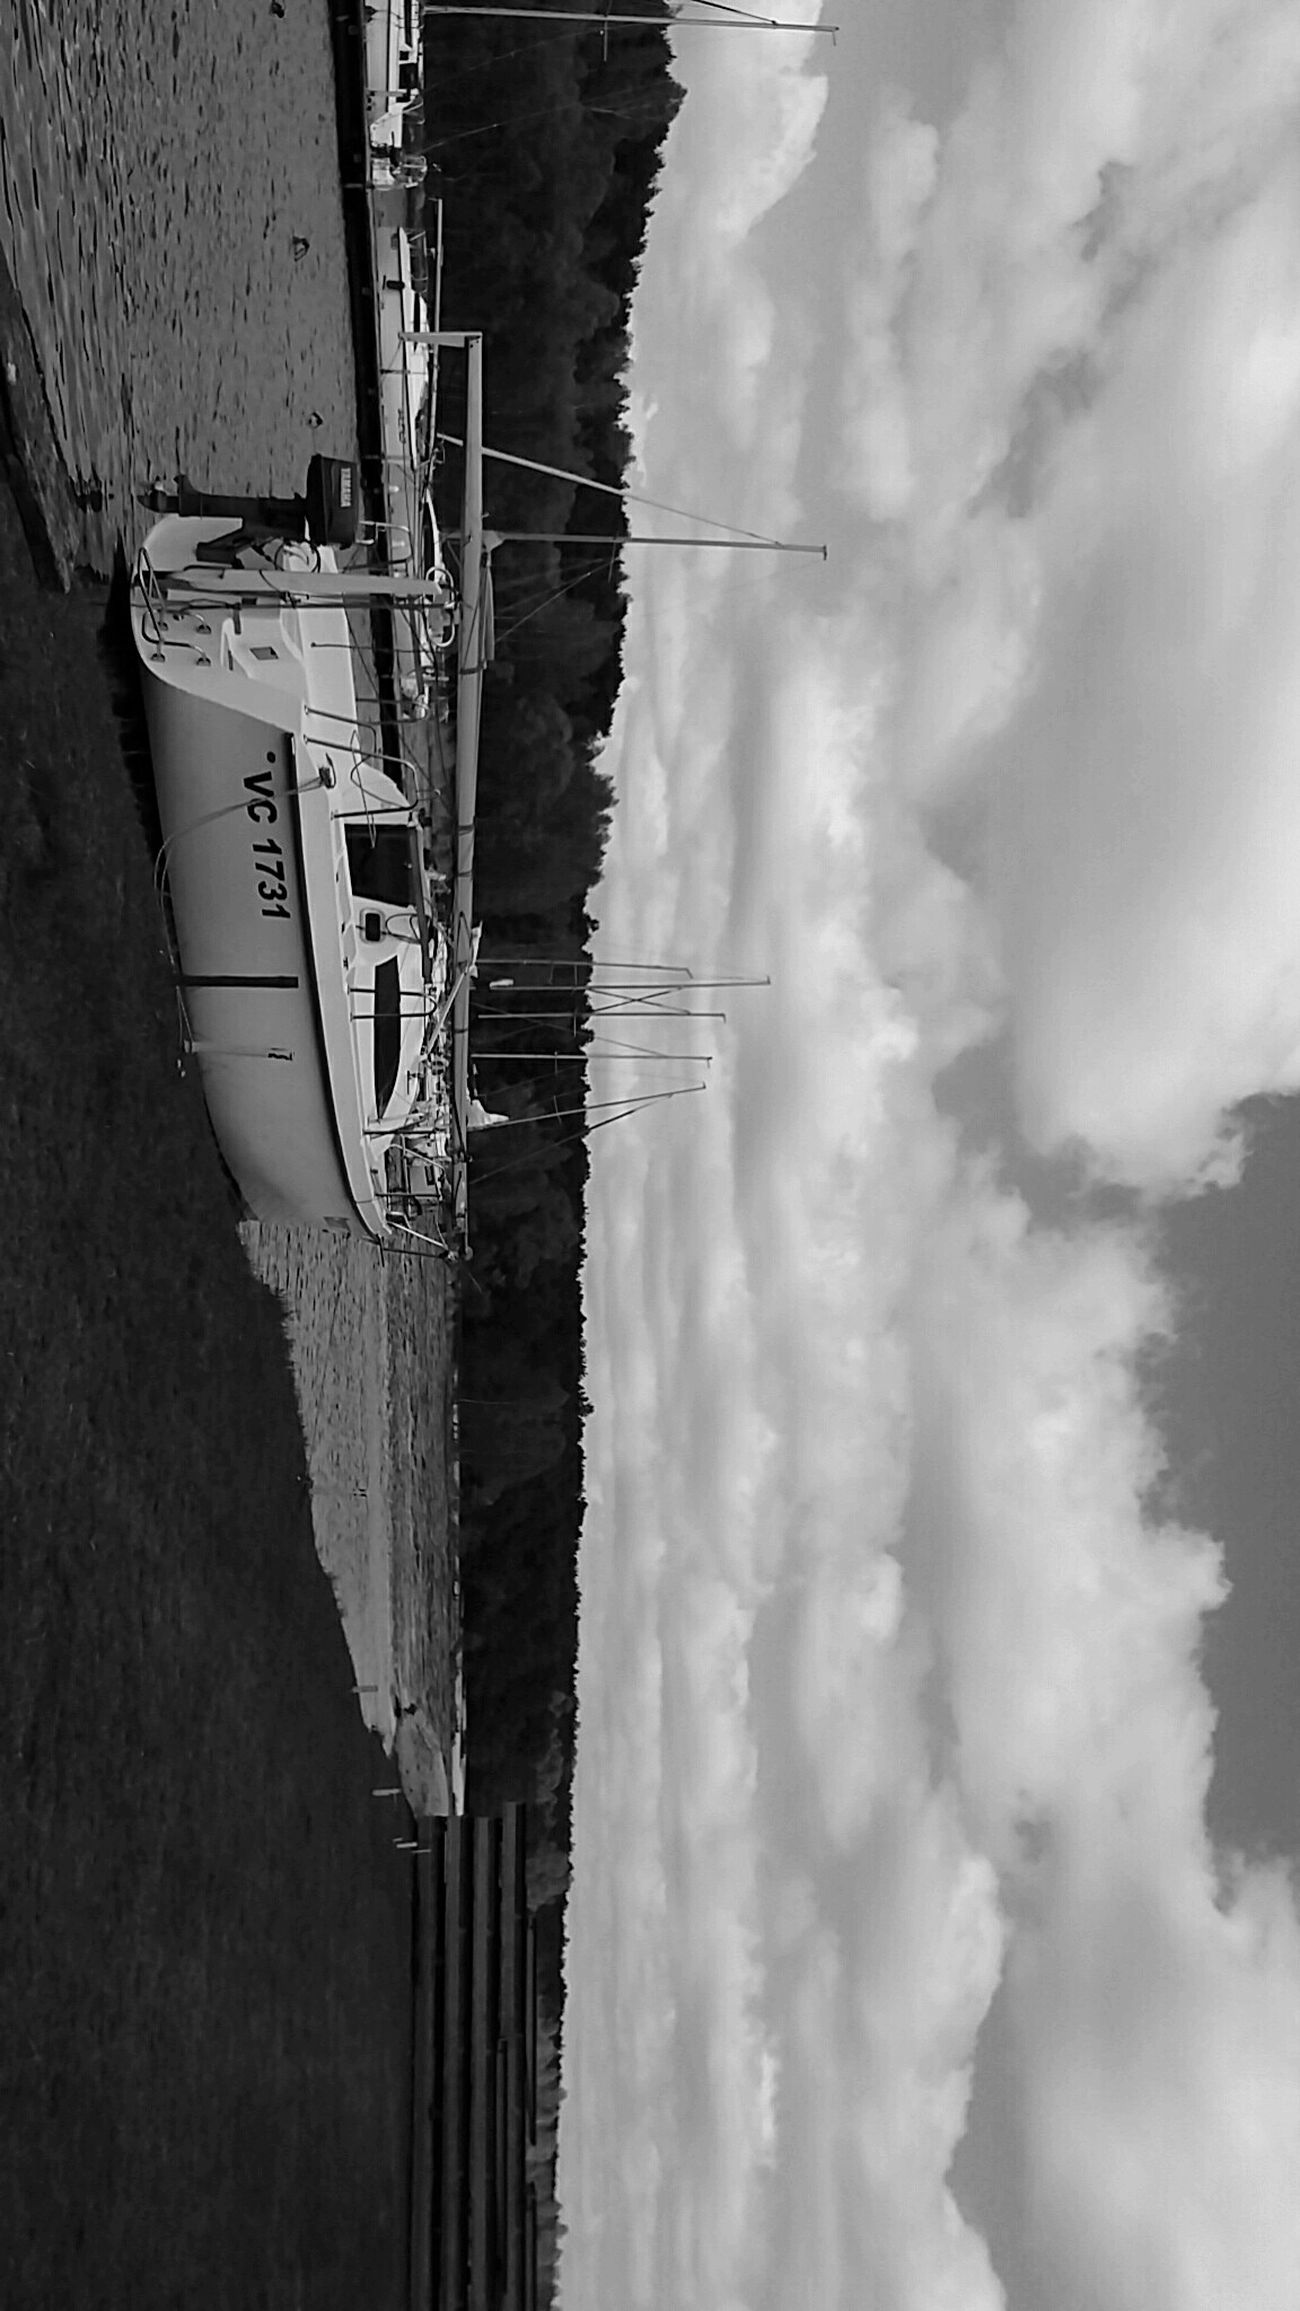 Ship Ships⚓️⛵️🚢 Ships🚢 Shiplife Ships On The Water Ships Boats⛵️ Boating Boat Water Outdoors Day Boats And Water Boats On Water Boats Blackandwhite Clouds Sky Beautiful Black Black And White Telephone Photography